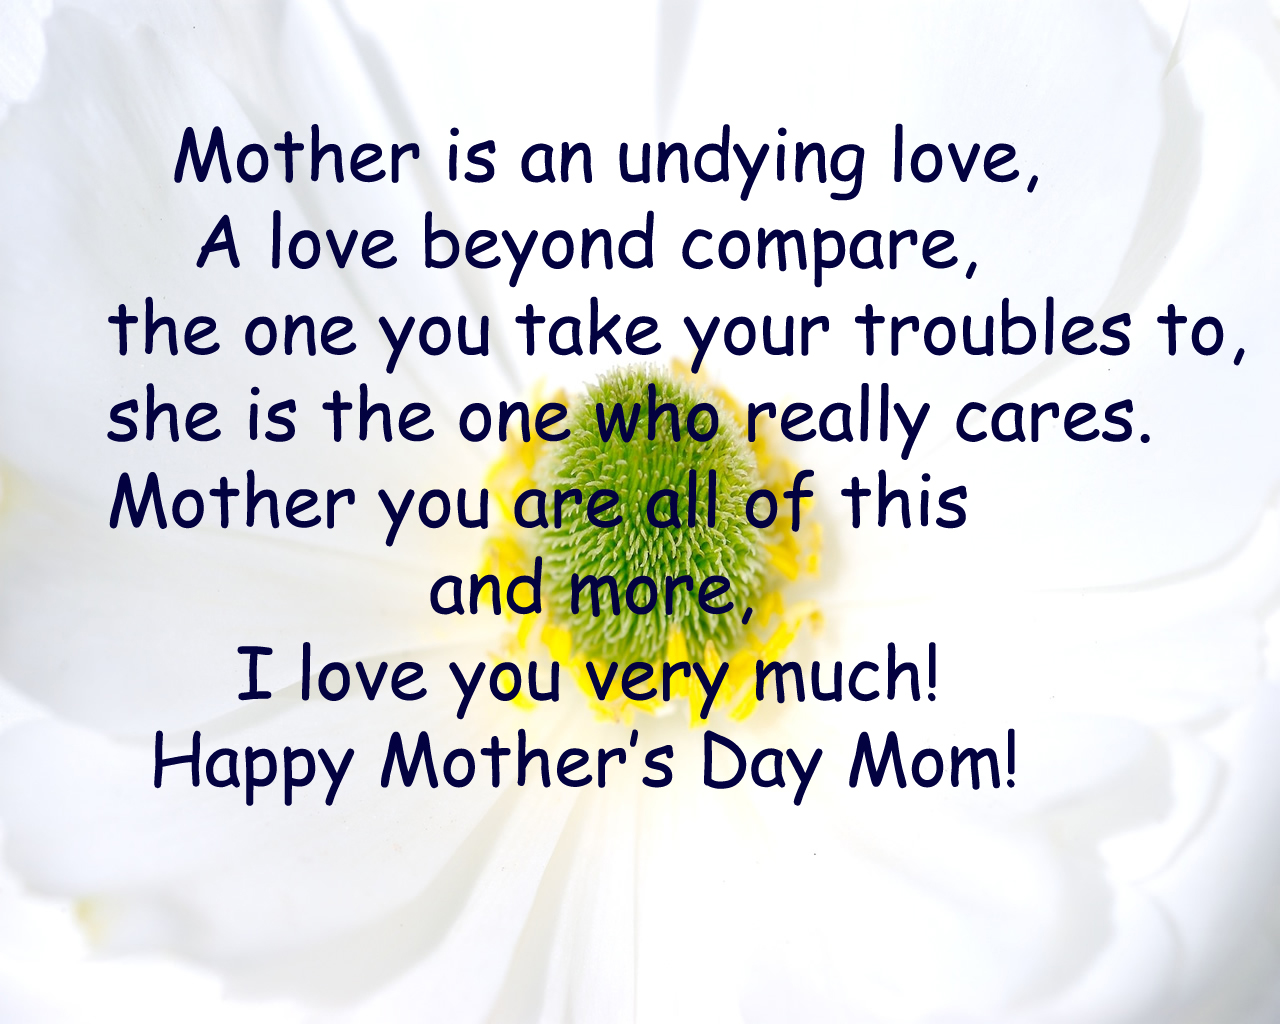 Mother Is An Undying Love, A Love Beyond Compare, The One You Take Your Troubles To, She Is The One Who Really Cares. Mother You Are All Of This And More, I Love You Very Much!